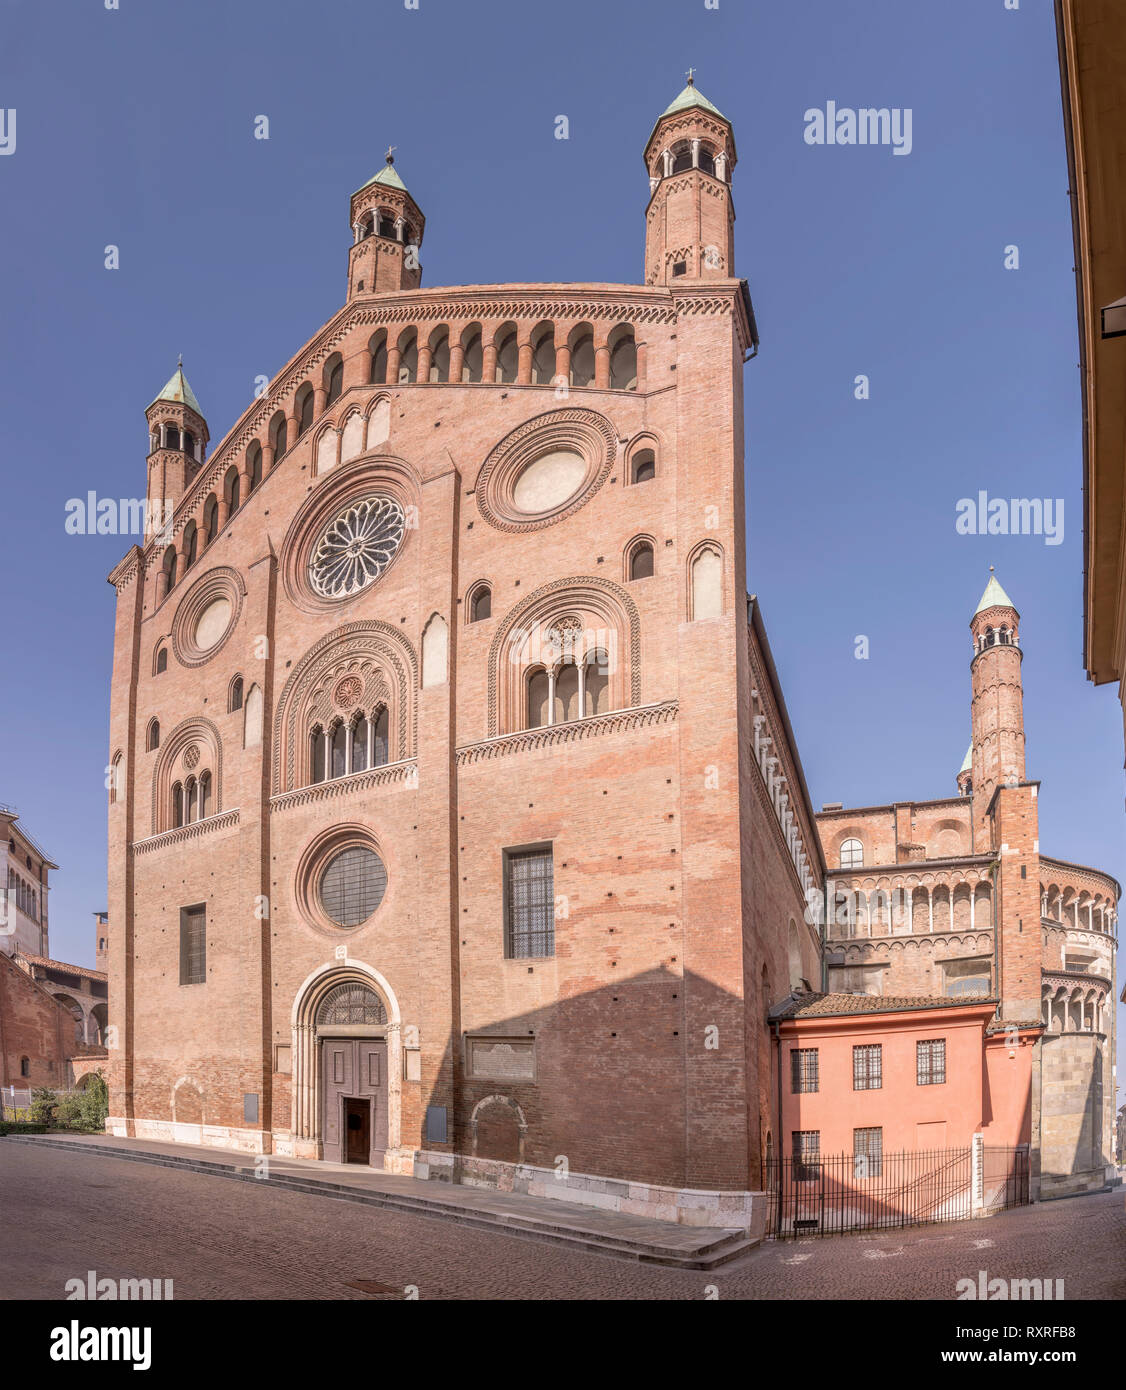 view of Romanseque Cathedral transept facade, shot in bright winter light at Cremona, Lombardy,  Italy - Stock Image